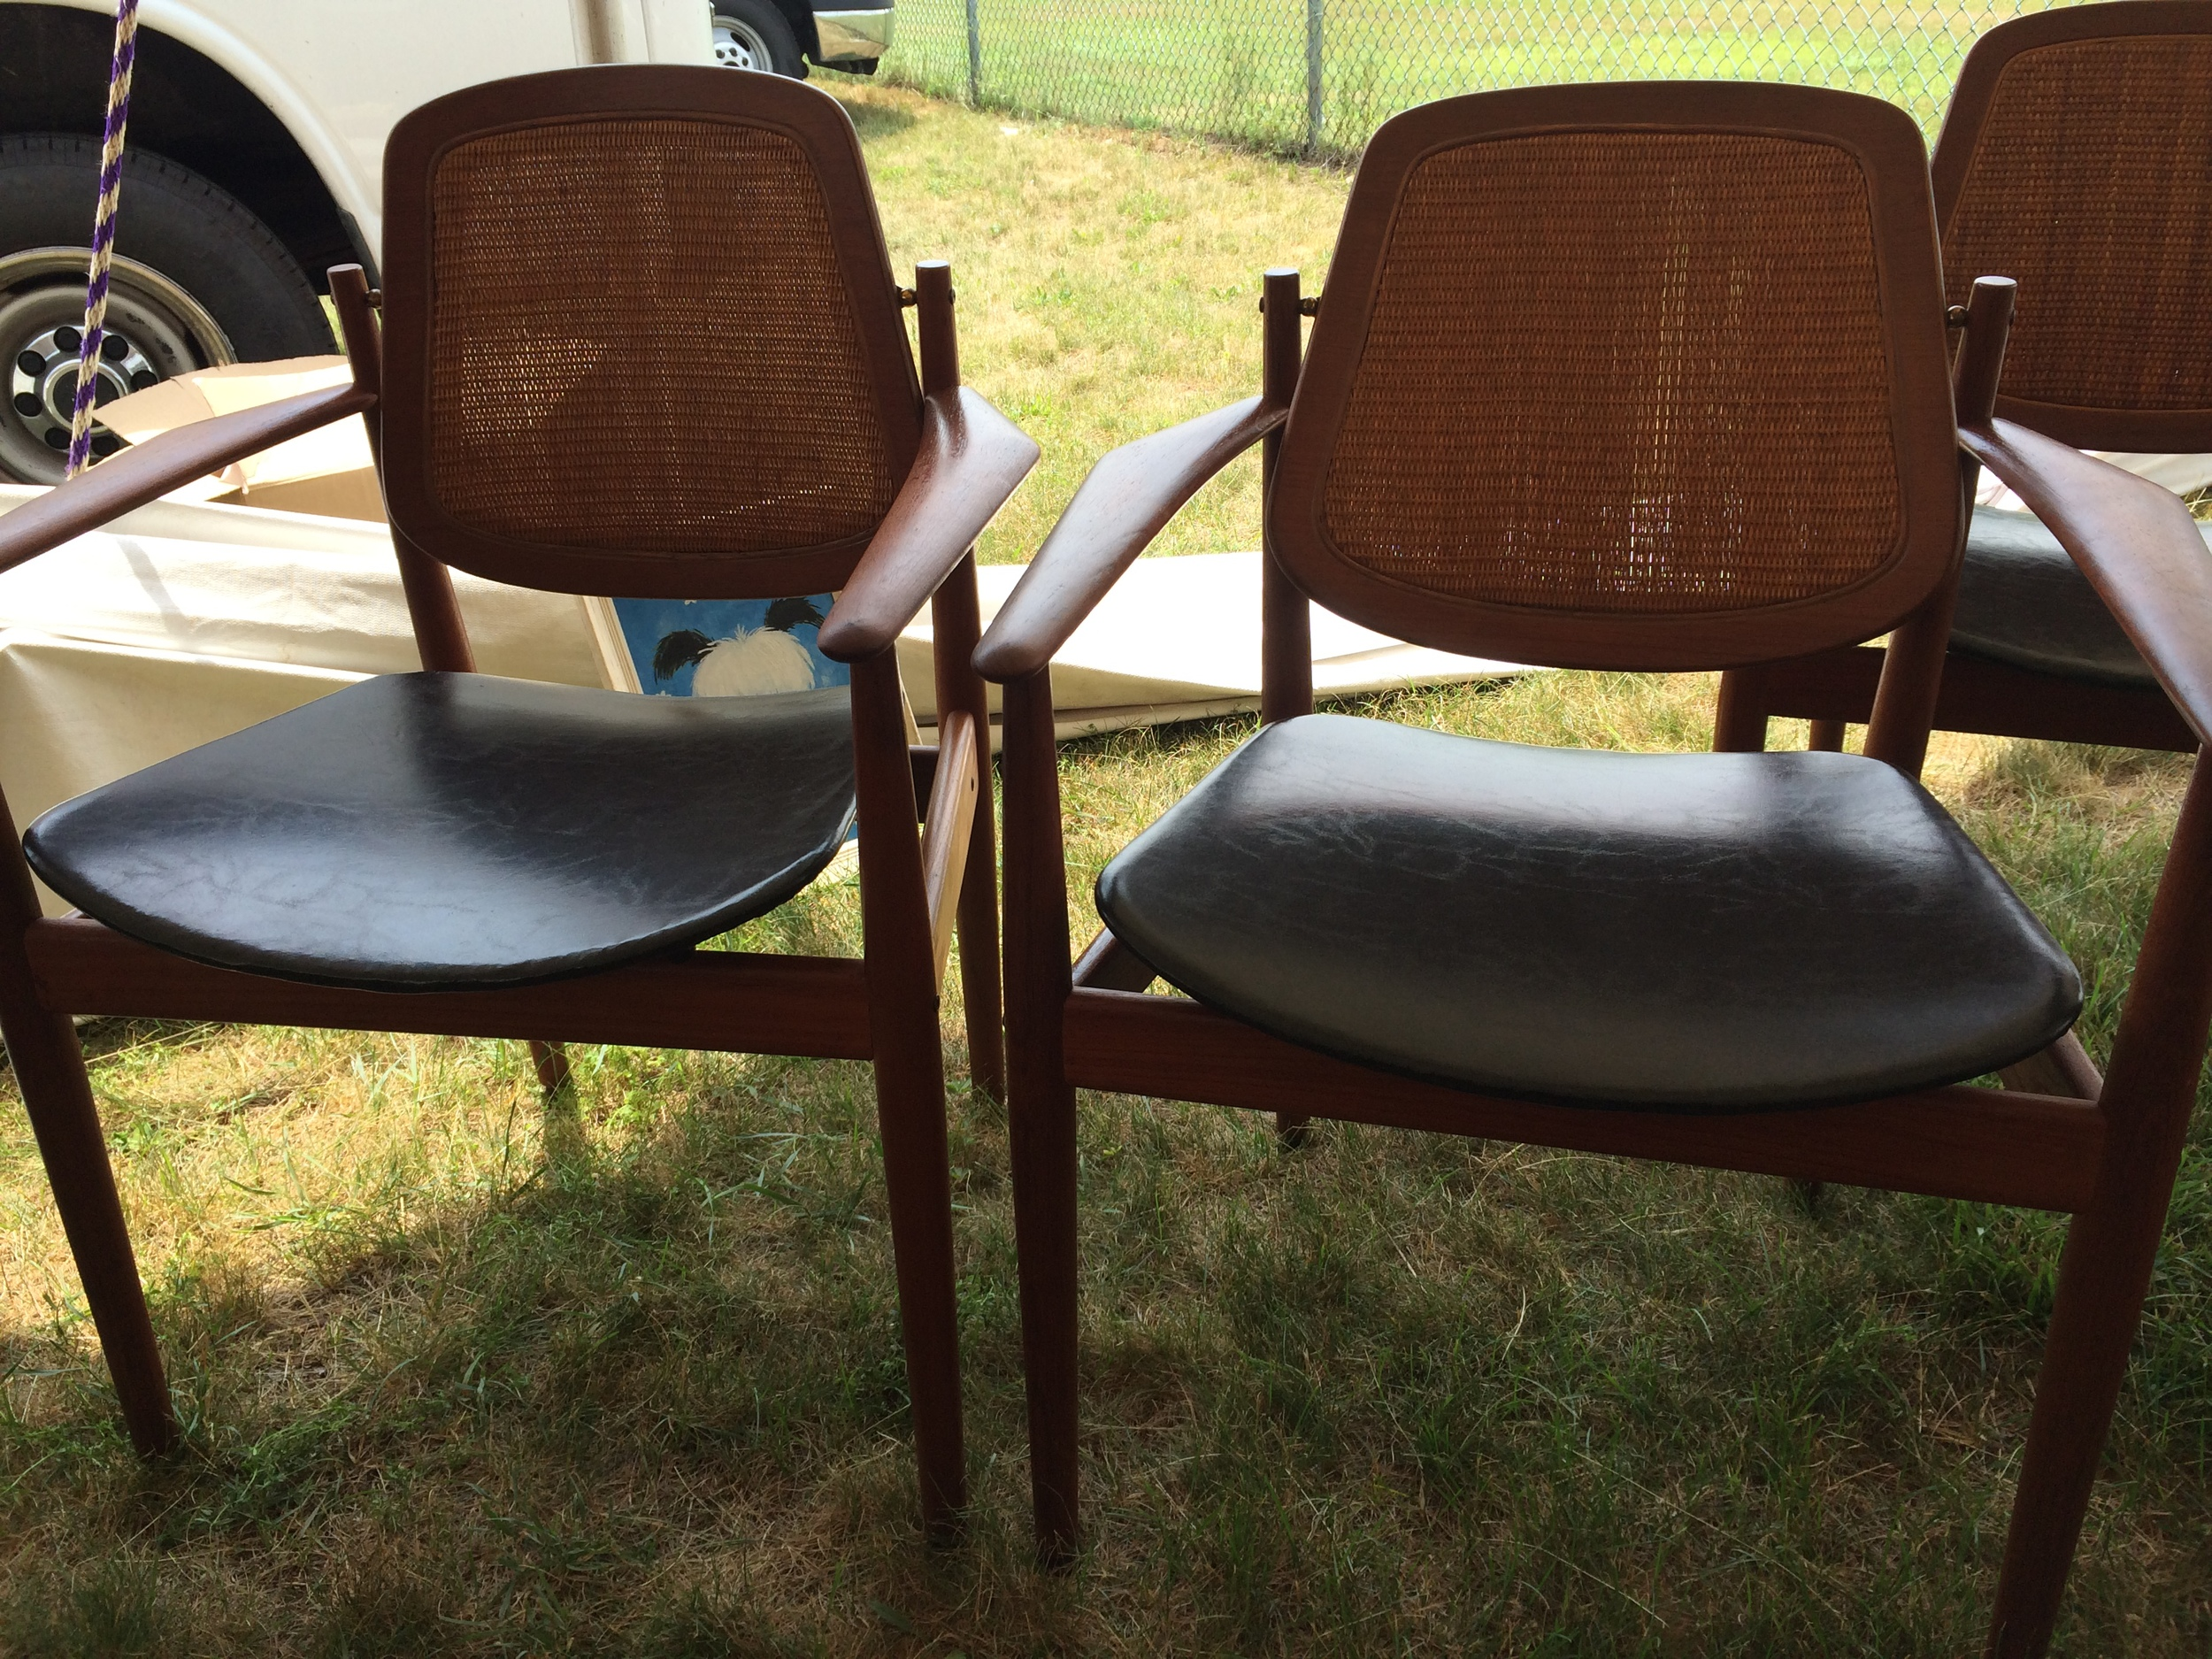 These chairs were just re-caned and in great condition.